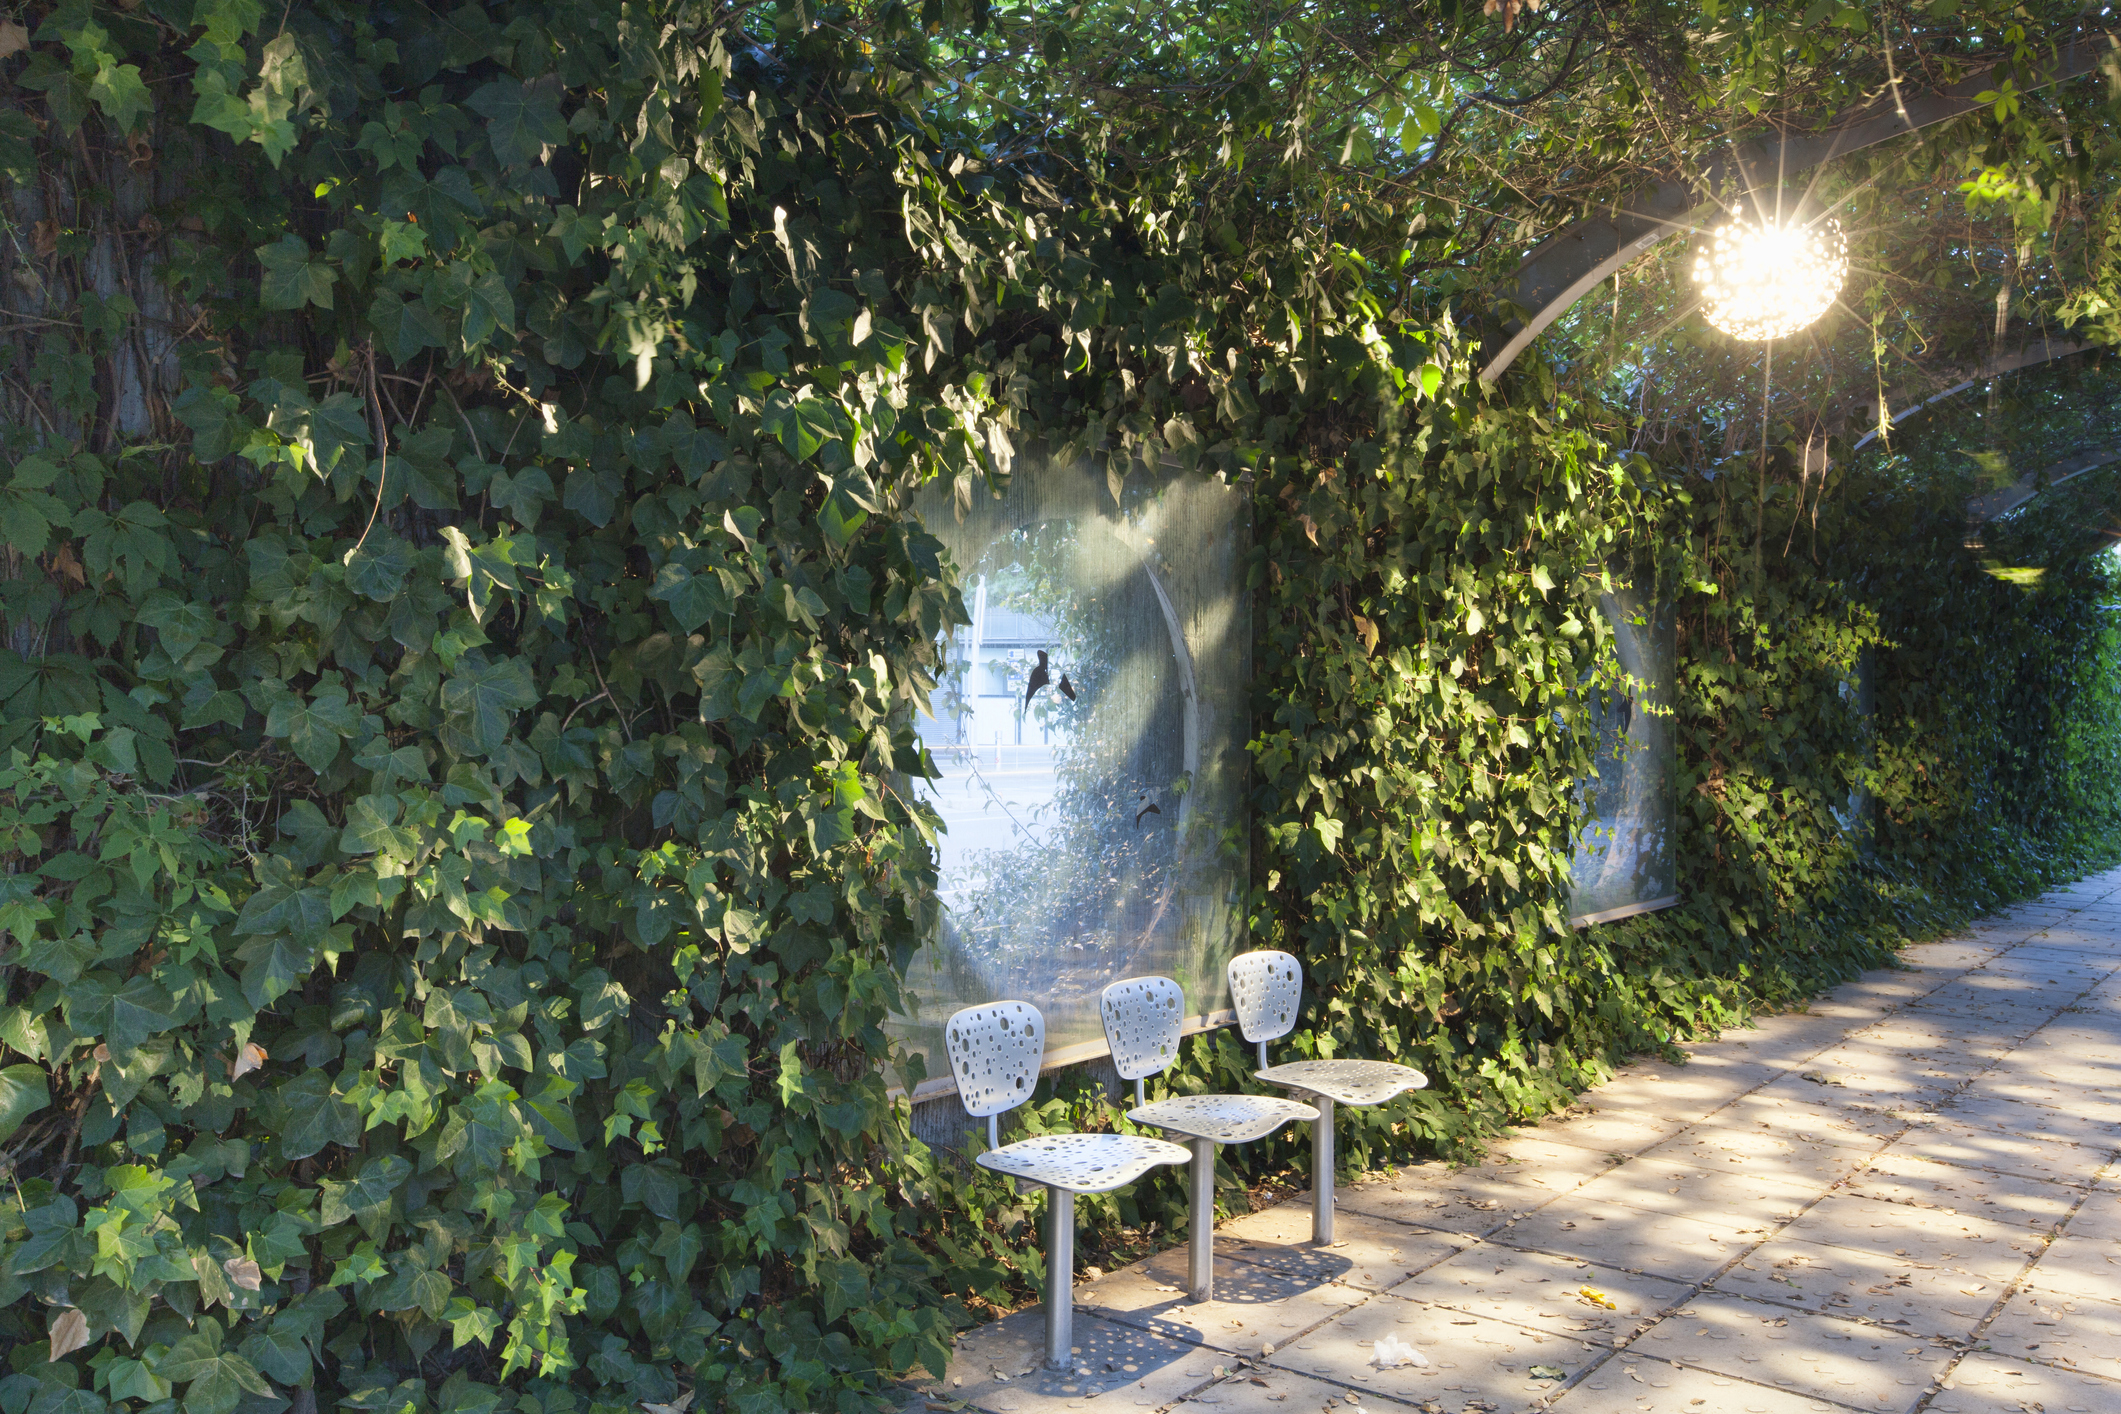 Three metal chairs sit against a wall covered in vines in Barcelona